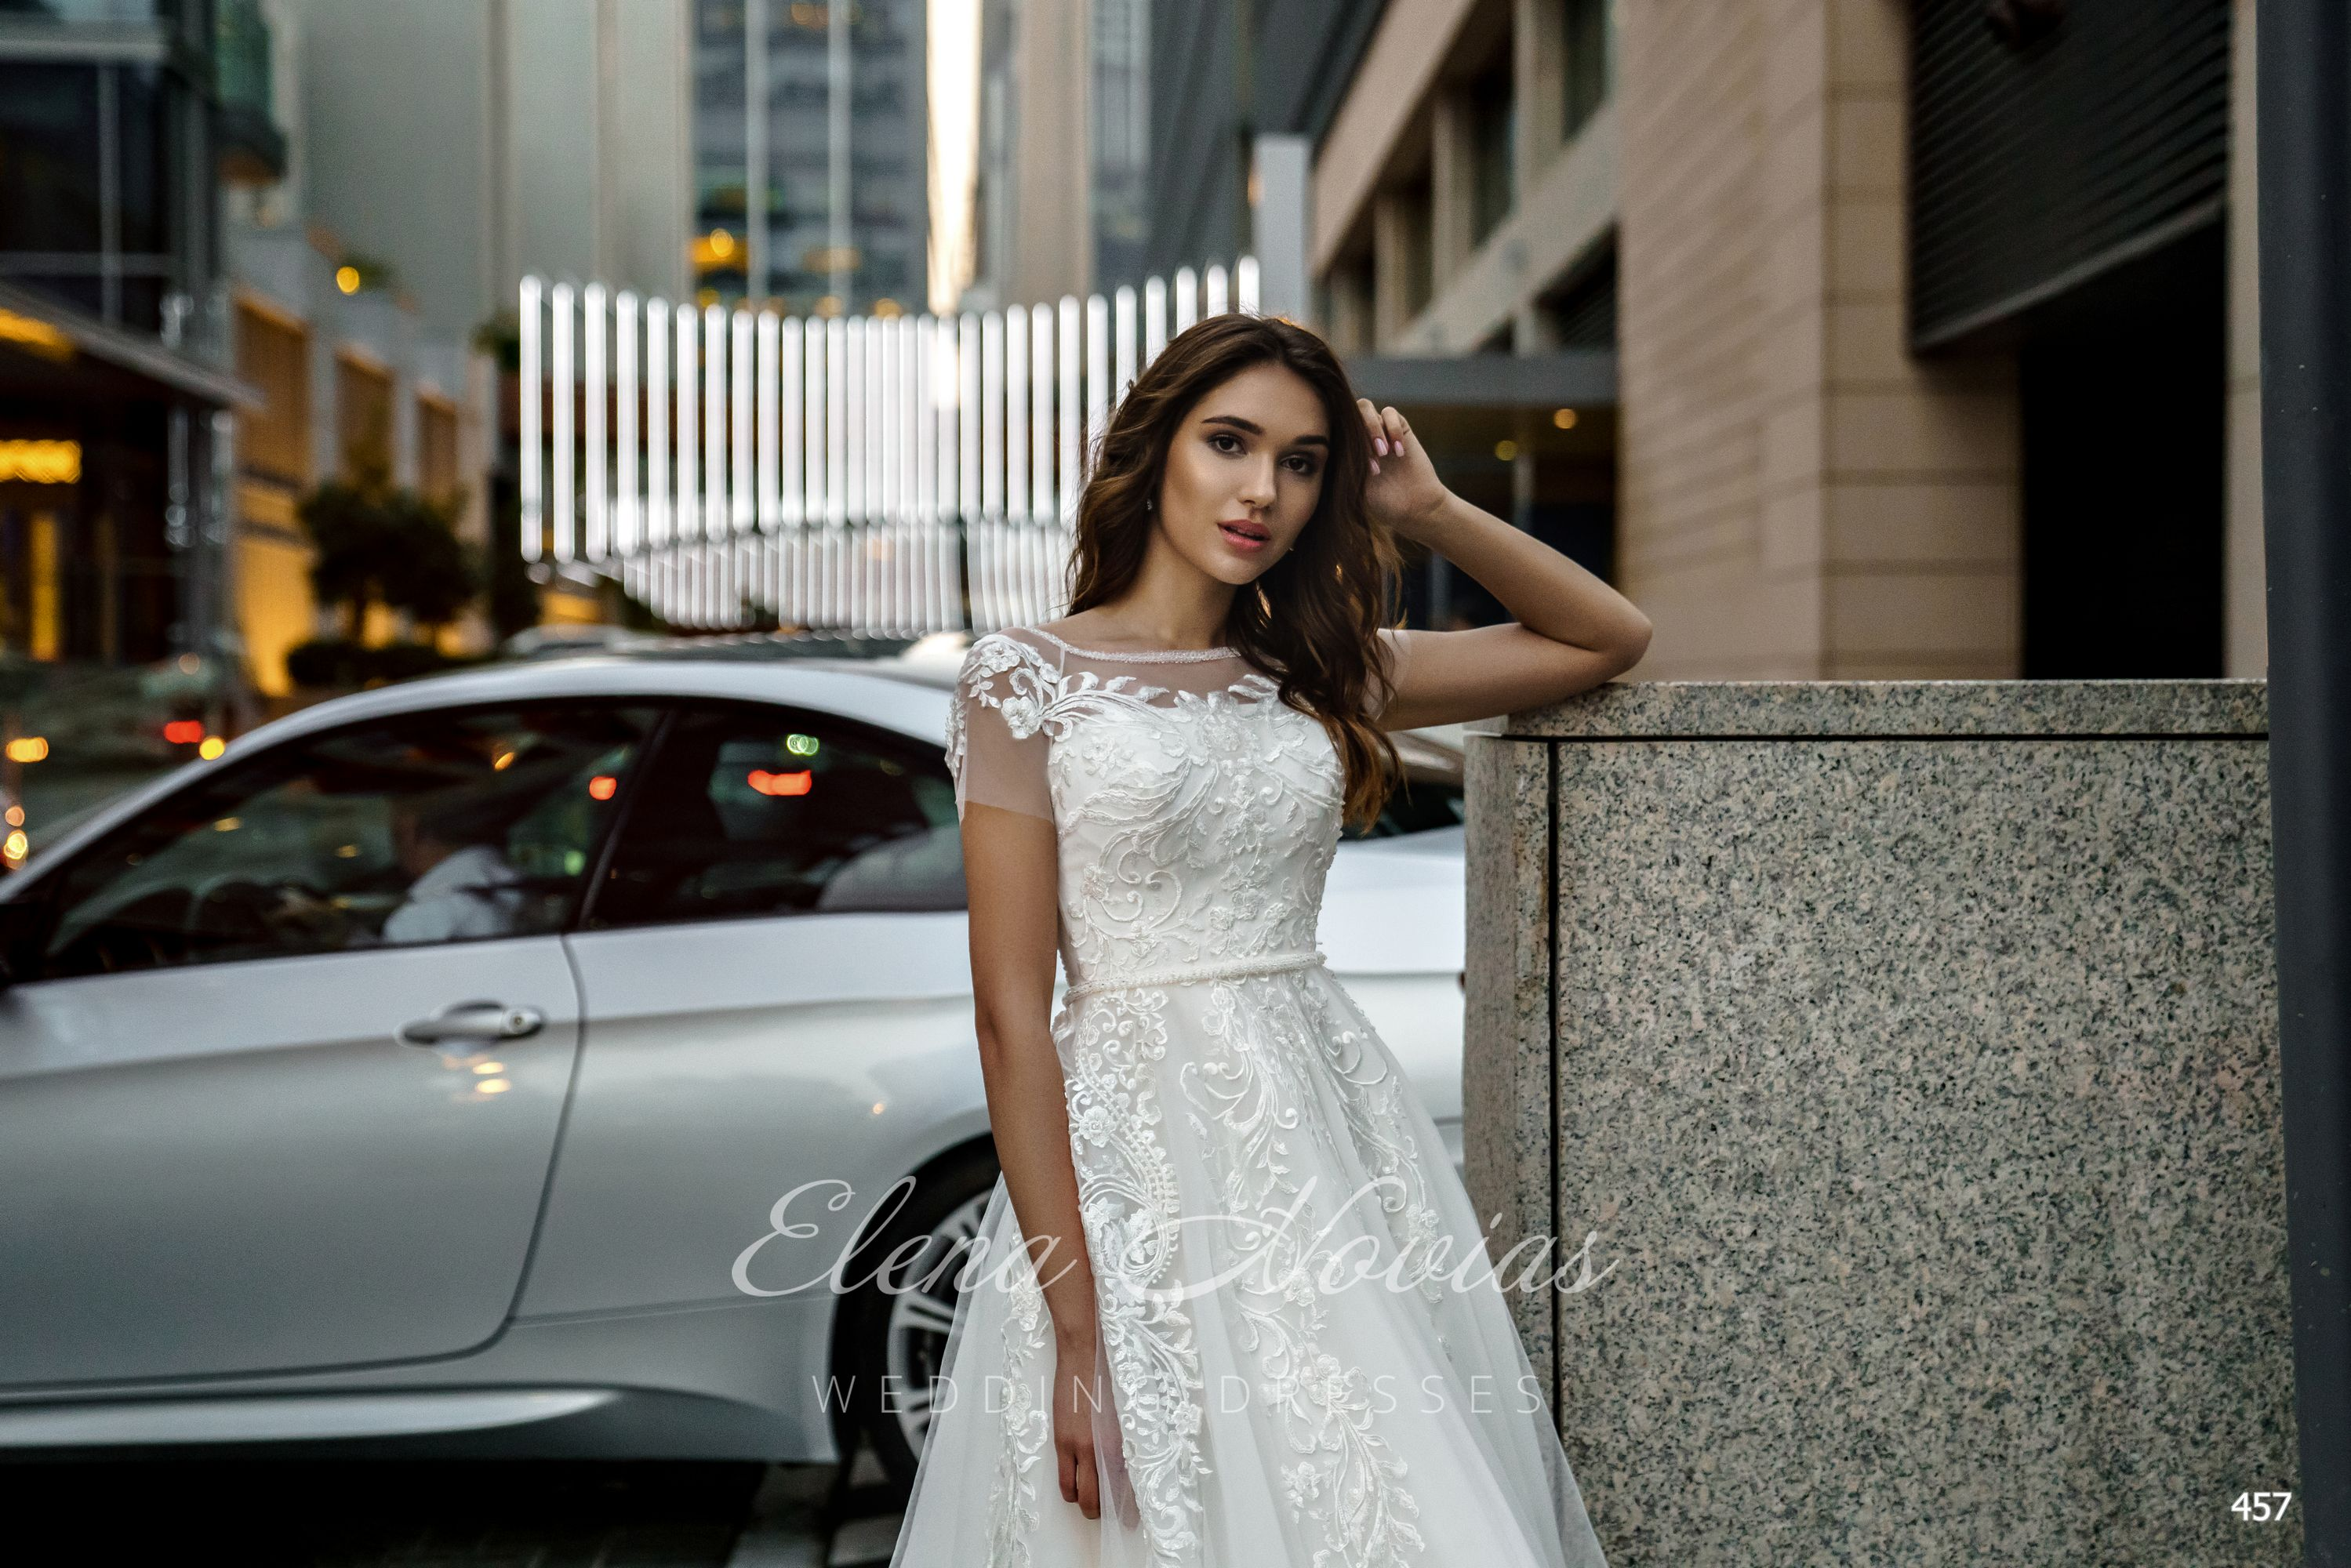 Wedding dresses 457 1